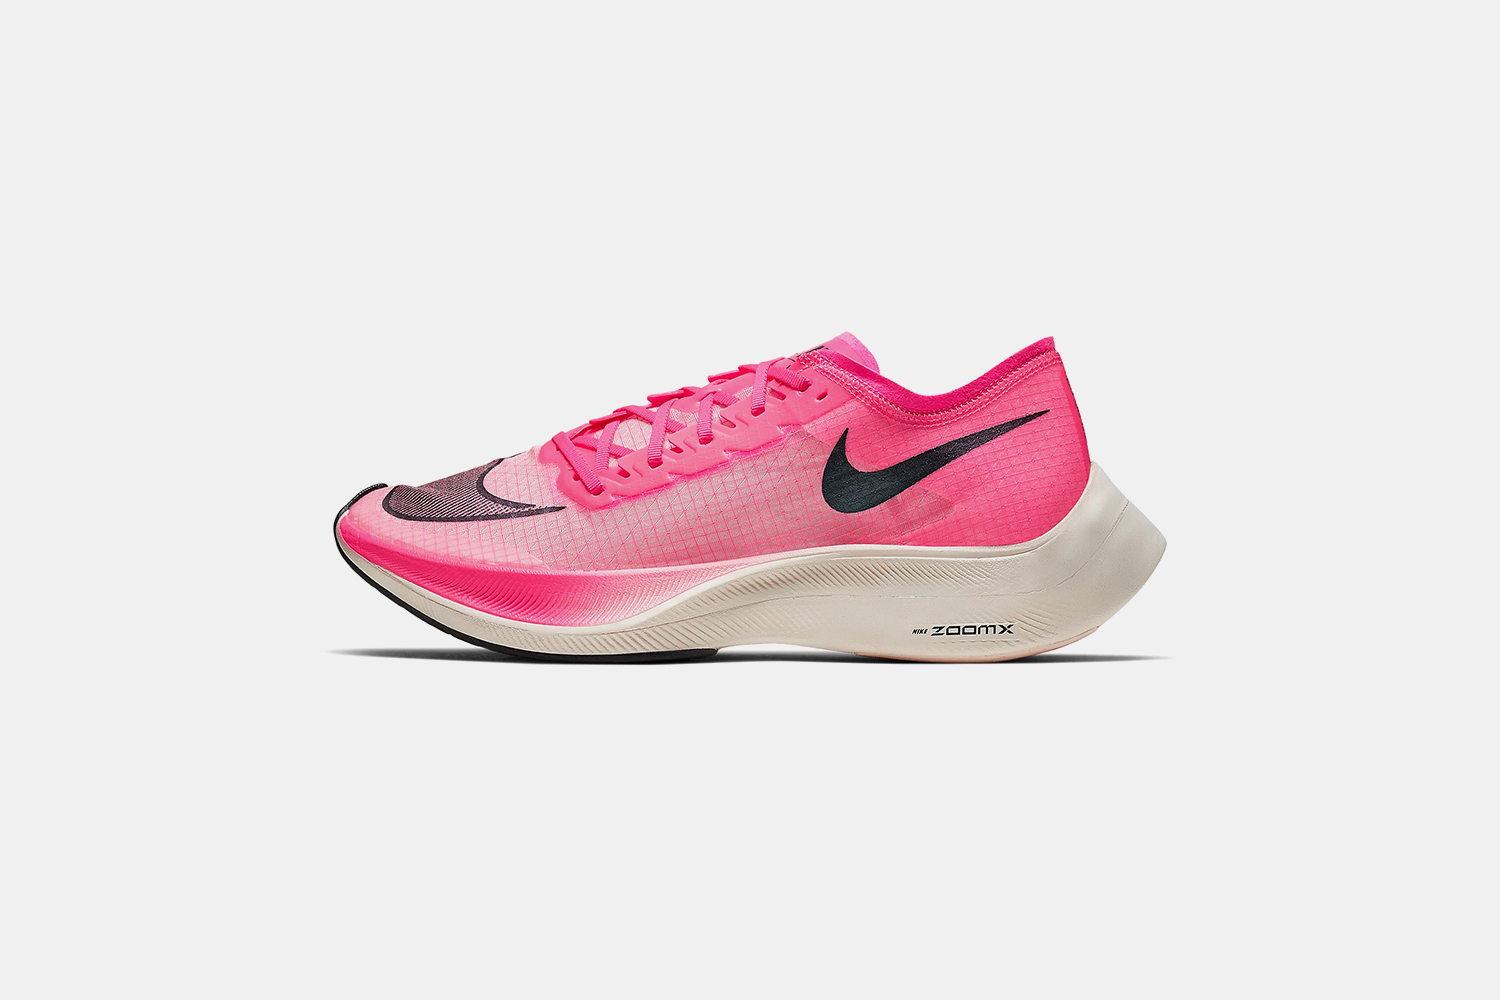 postre compartir Sucio  Nike's Controversial Vaporfly Running Shoes Declared Legal for Competition  - InsideHook